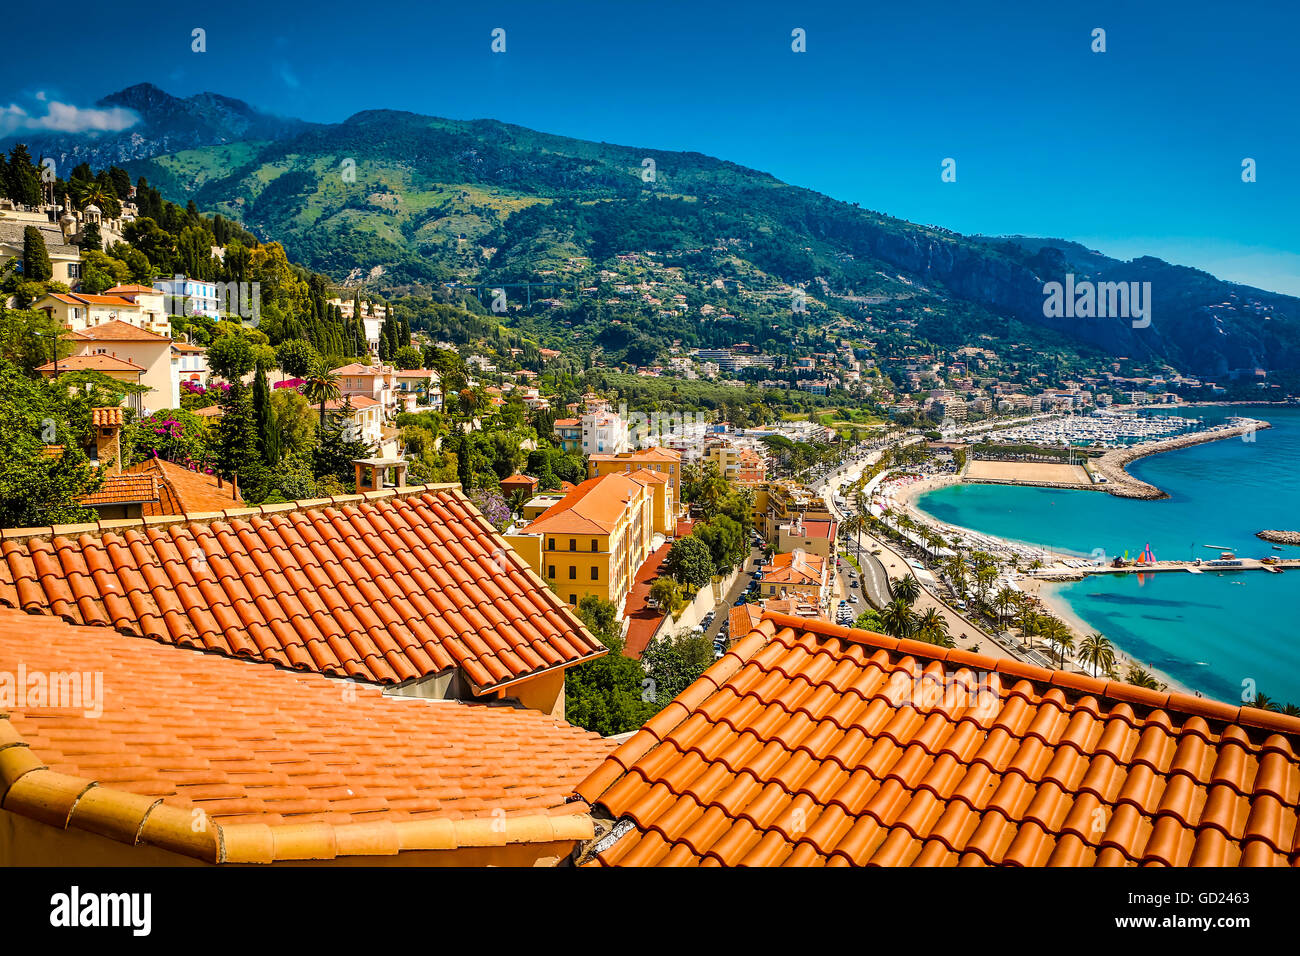 City view of medieval Menton, Alpes-Maritimes, Cote d'Azur, Provence, French Riviera, France, Mediterranean, - Stock Image